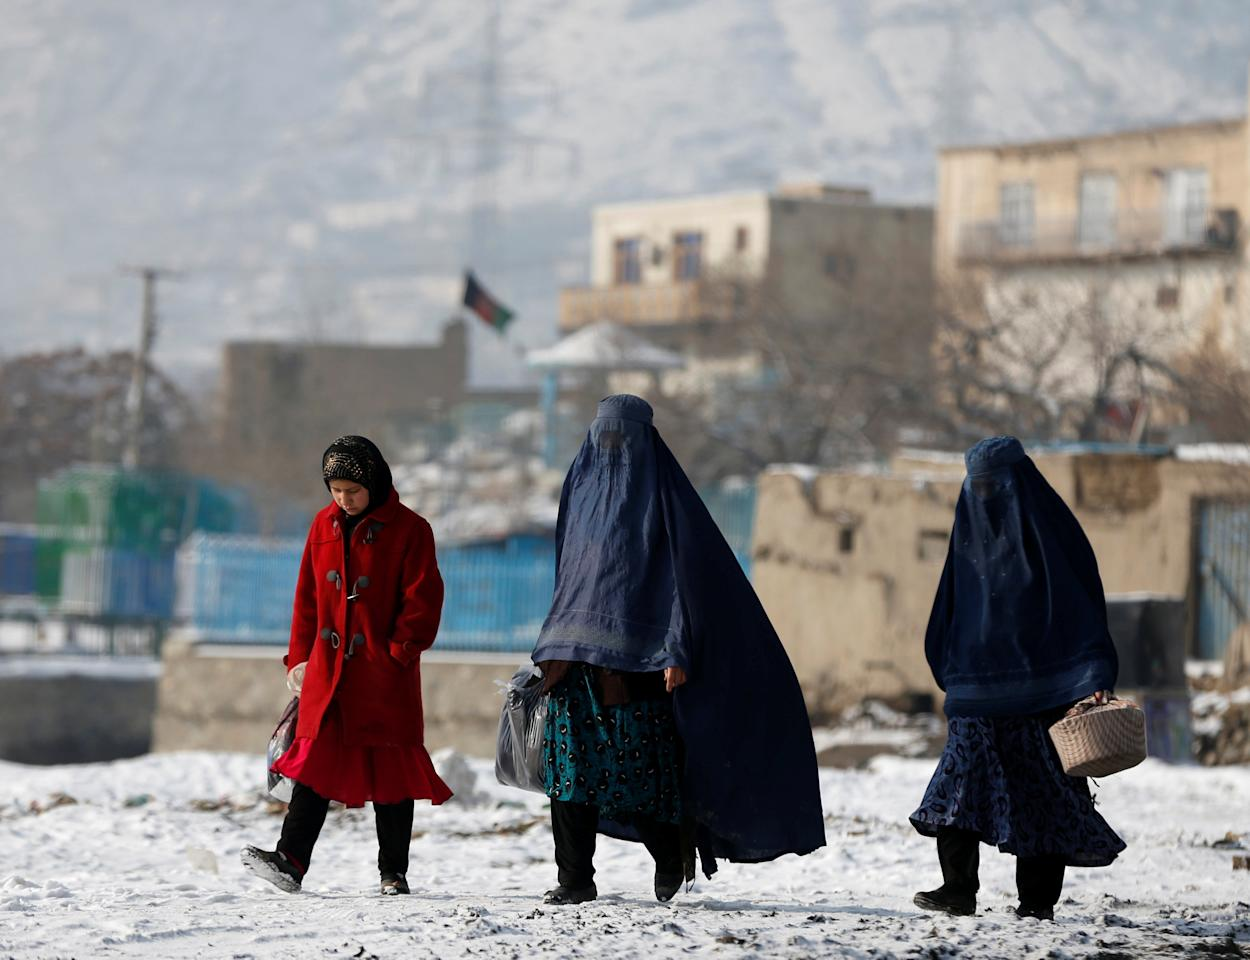 Women walk along a street in Kabul, Afghanistan January 16, 2017. REUTERS/Omar Sobhani      TPX IMAGES OF THE DAY